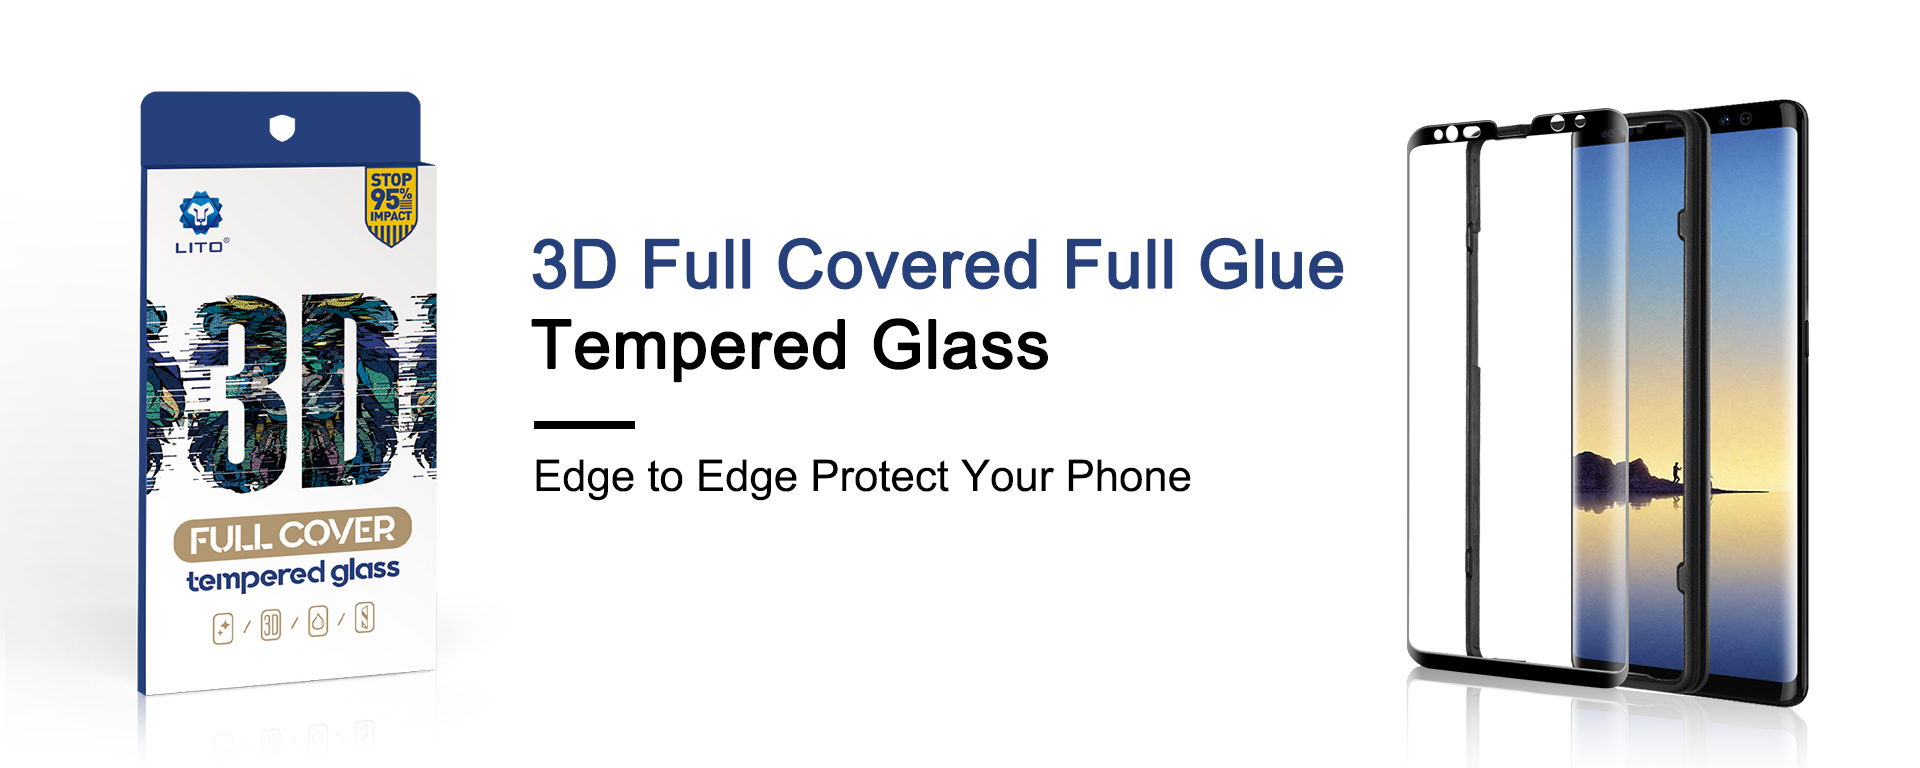 3D Curved edge full covered full glue tempered glass screen protector